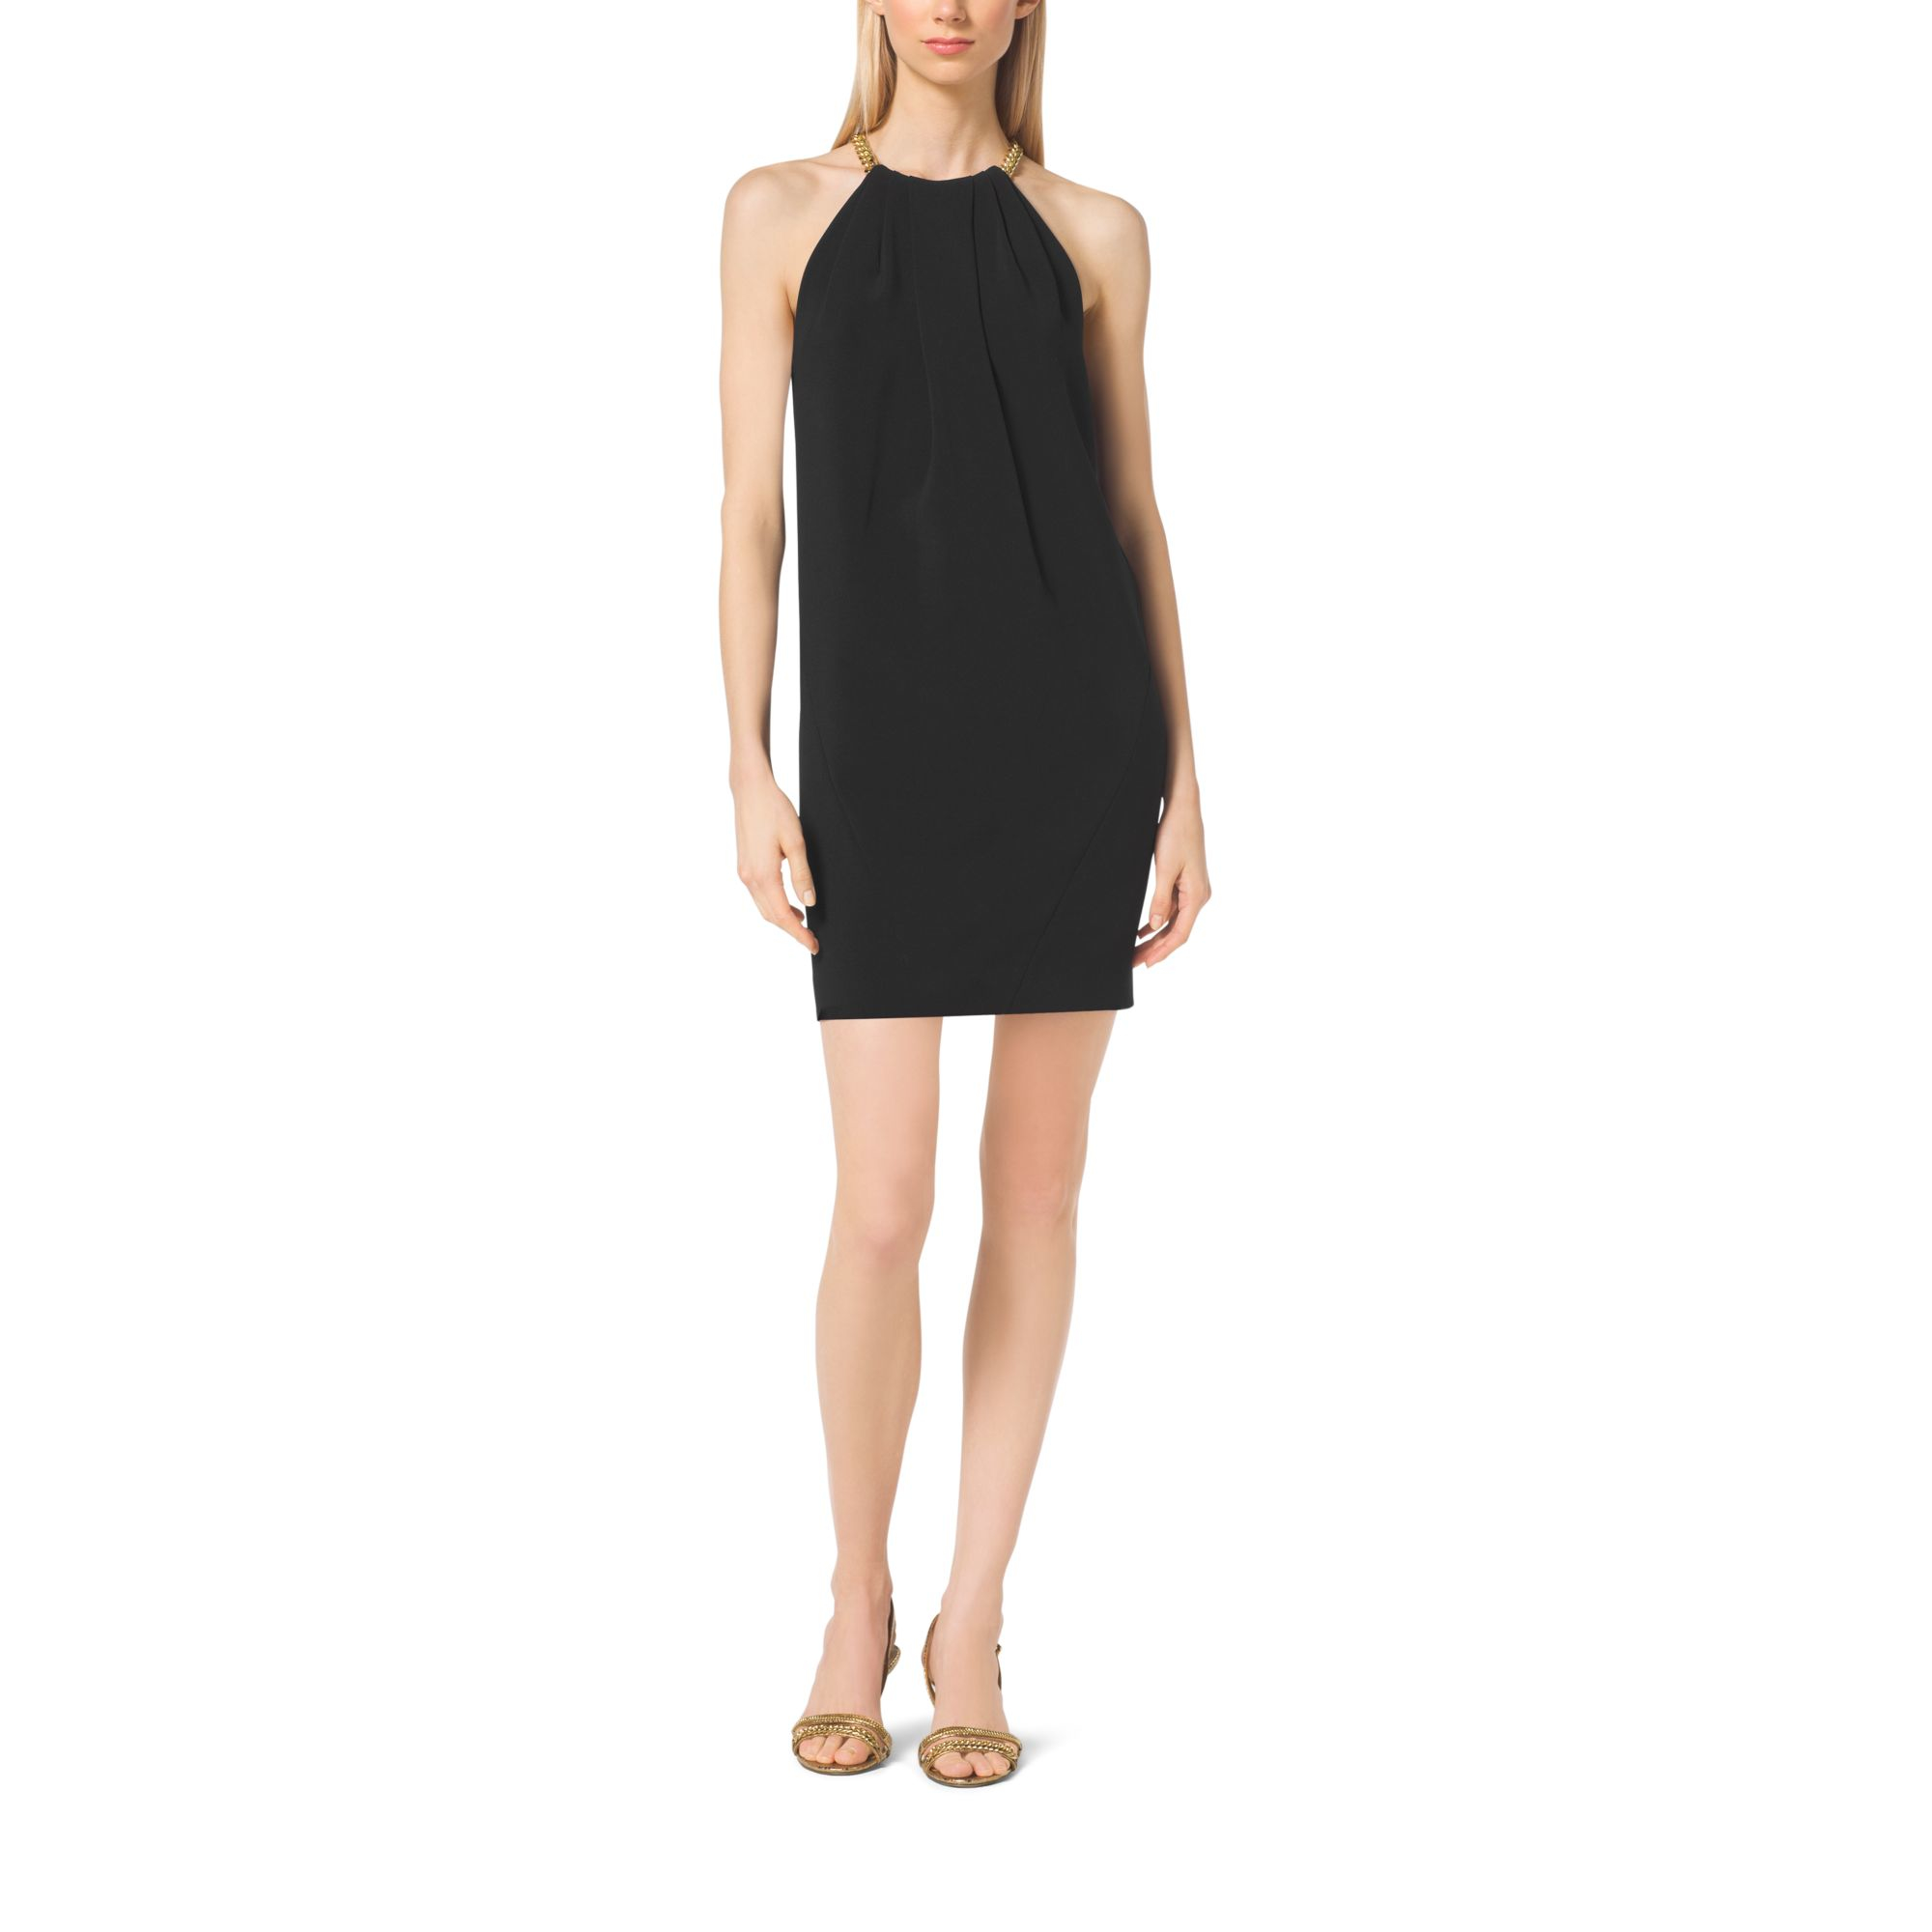 76bb099aaa Lyst - Michael Kors Chain-neck Halter Dress in Black